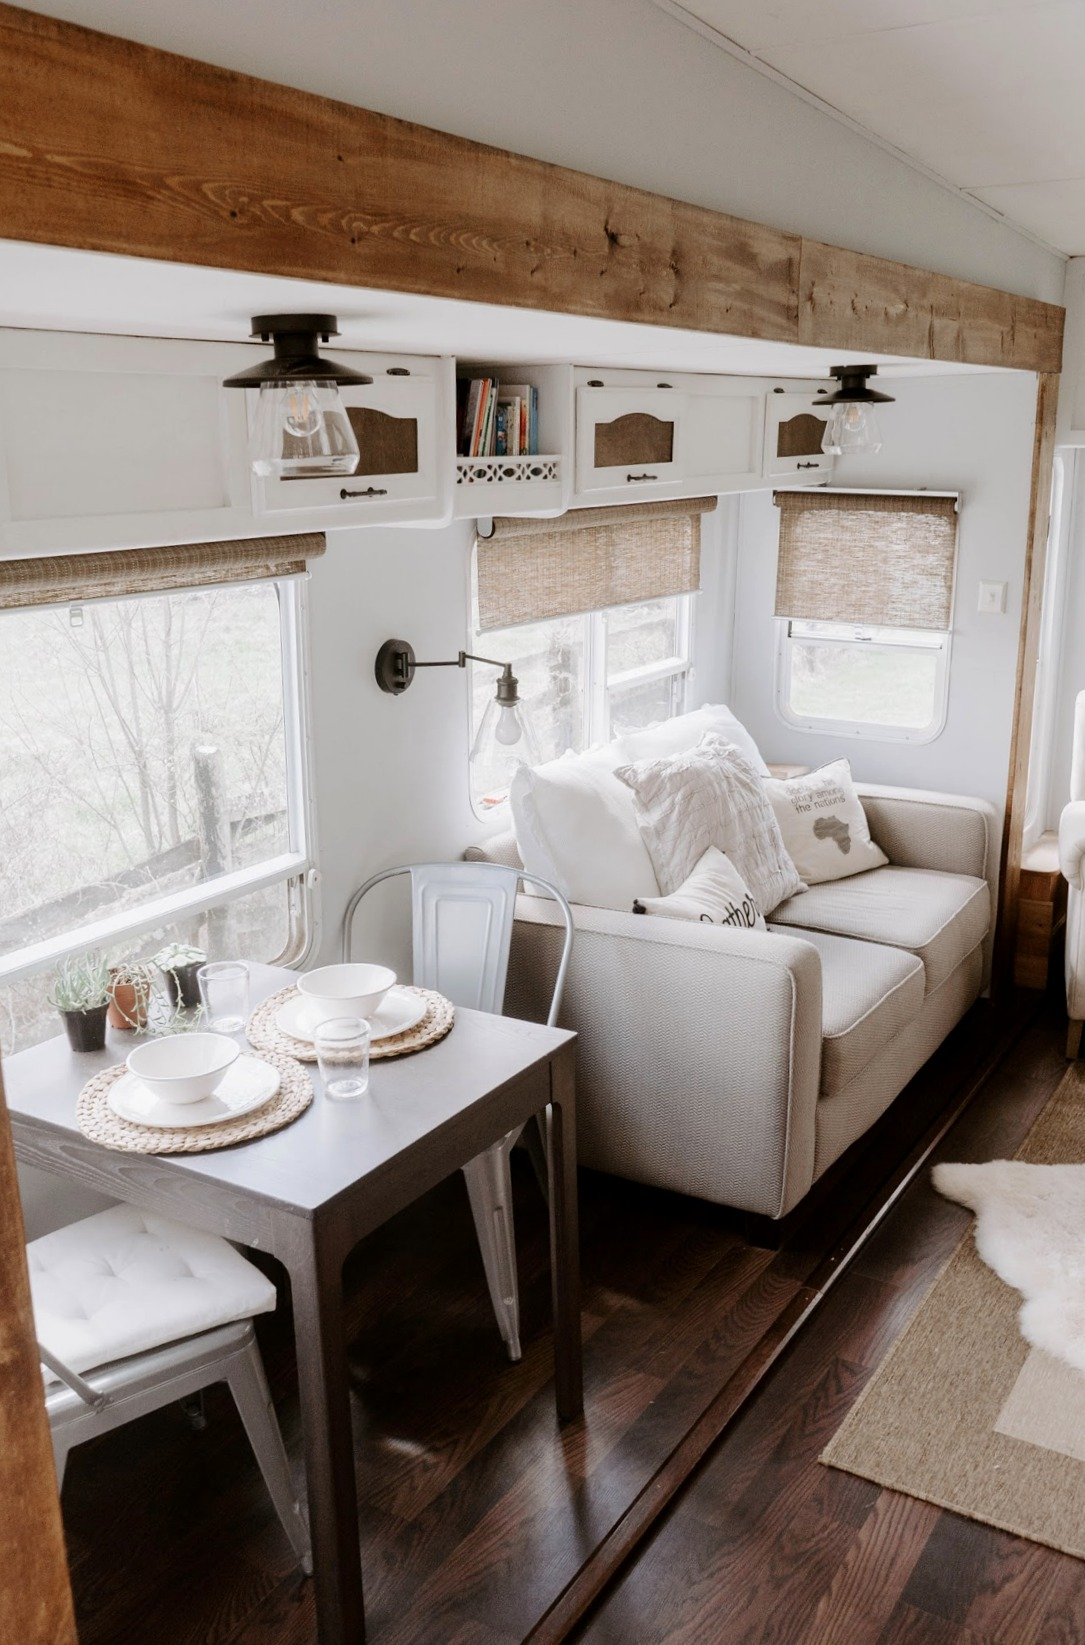 You won't believe this RV!